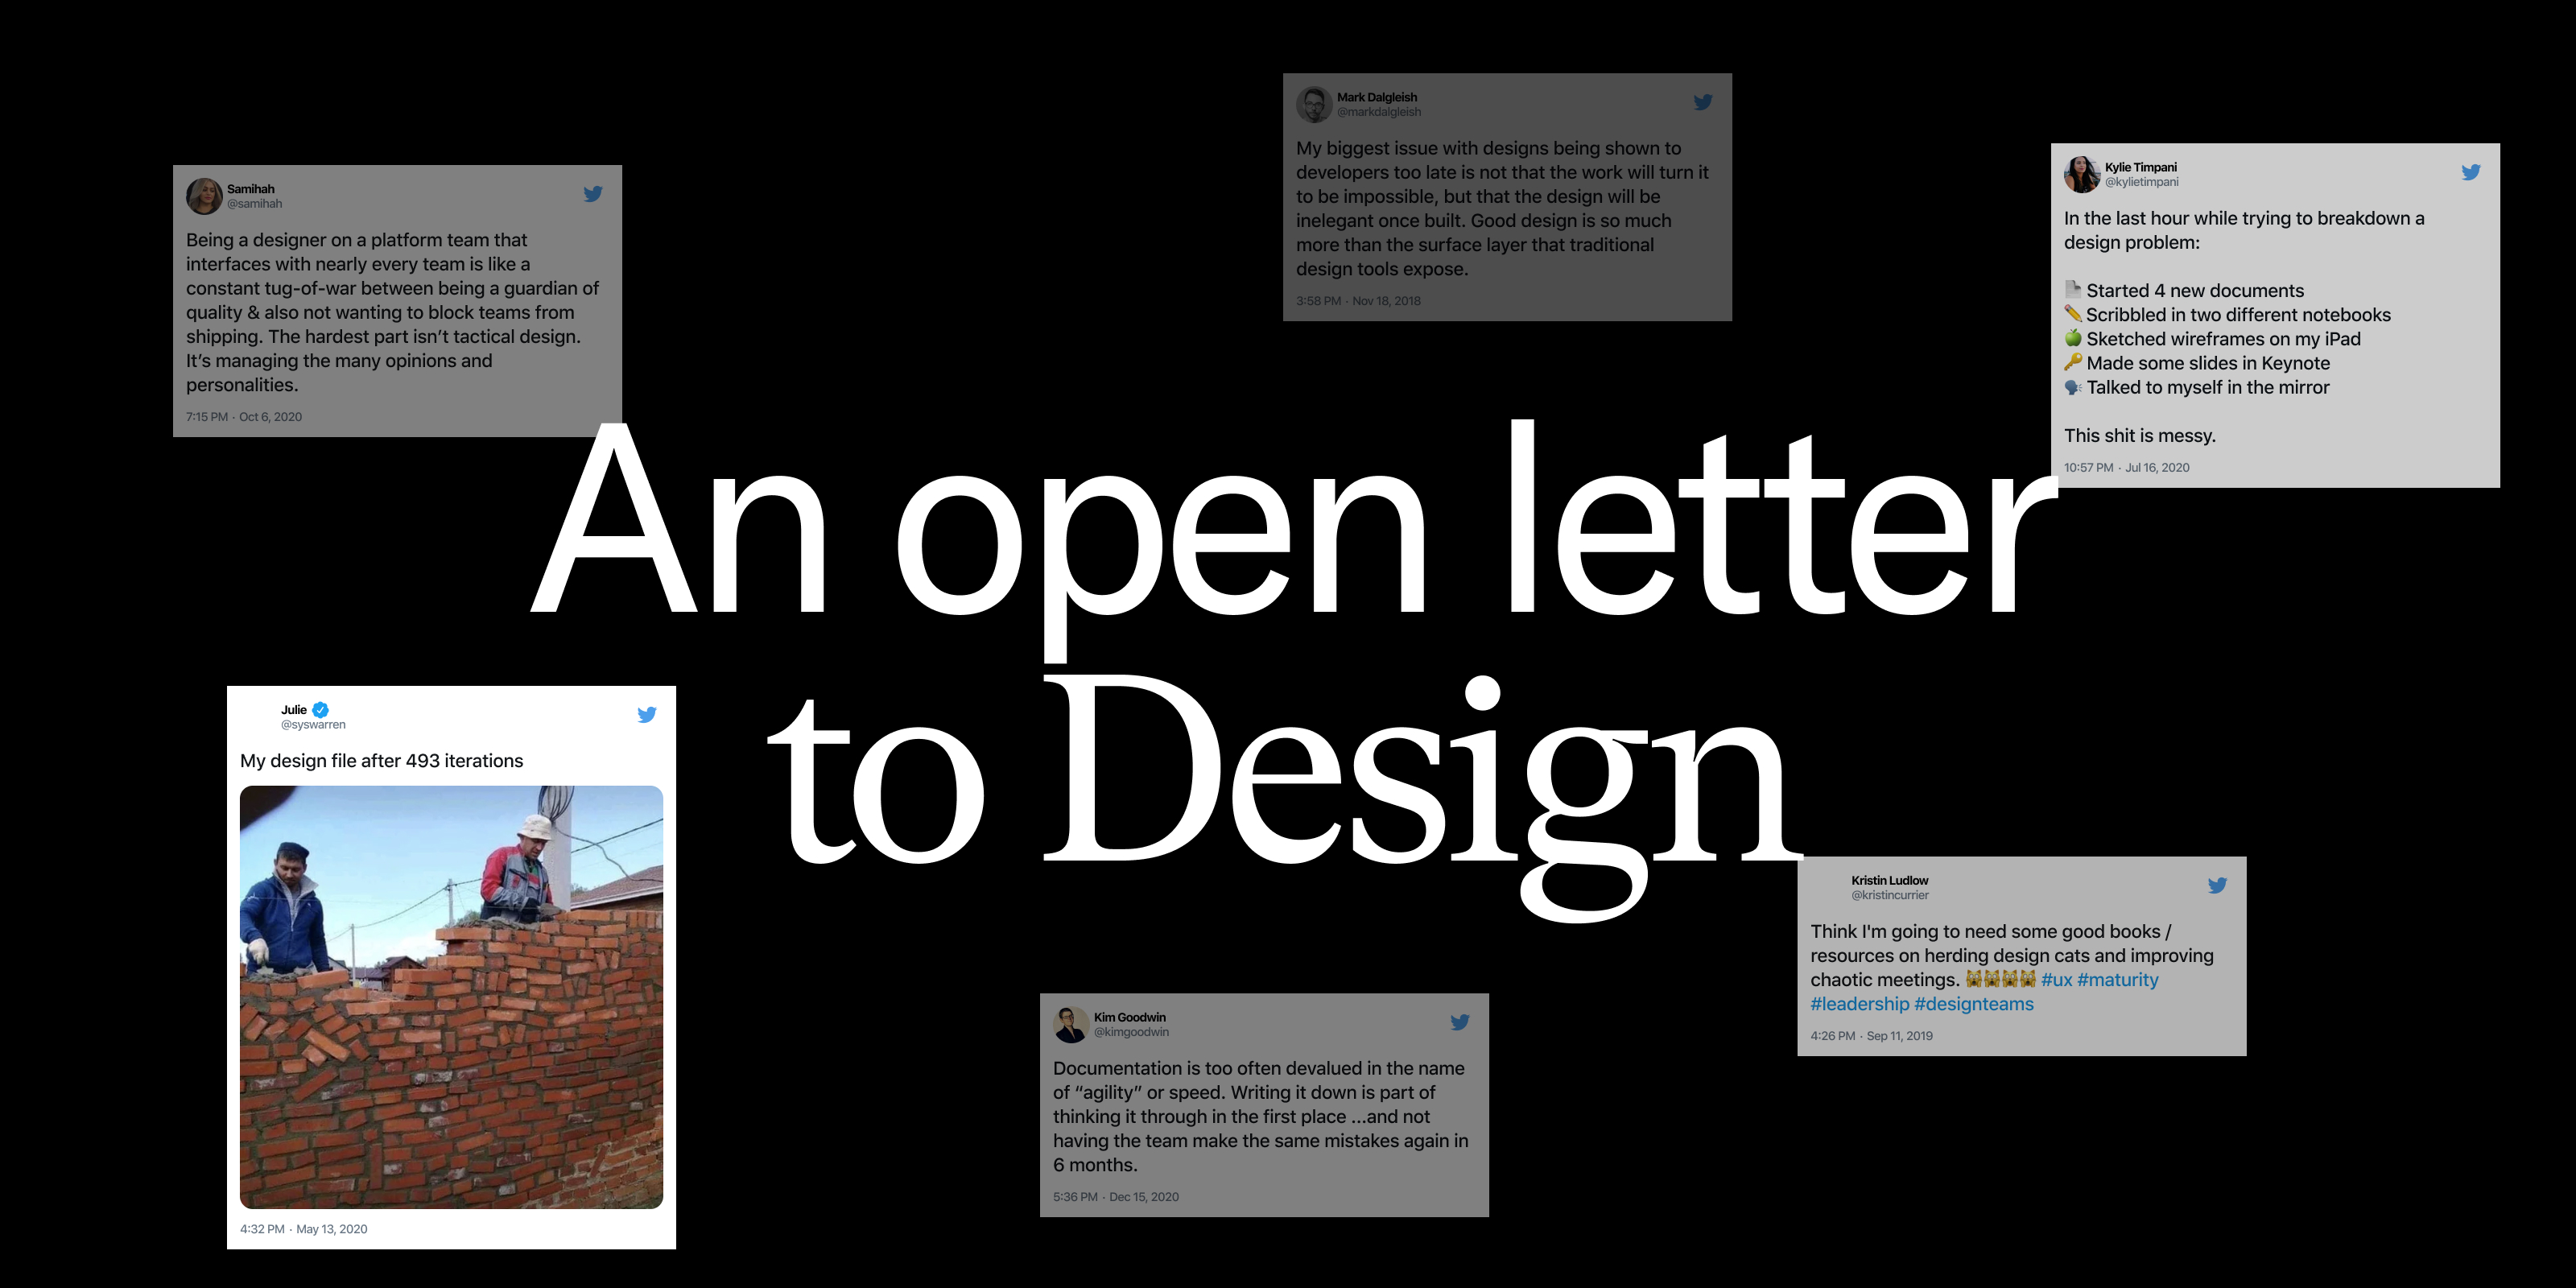 An open letter to Design